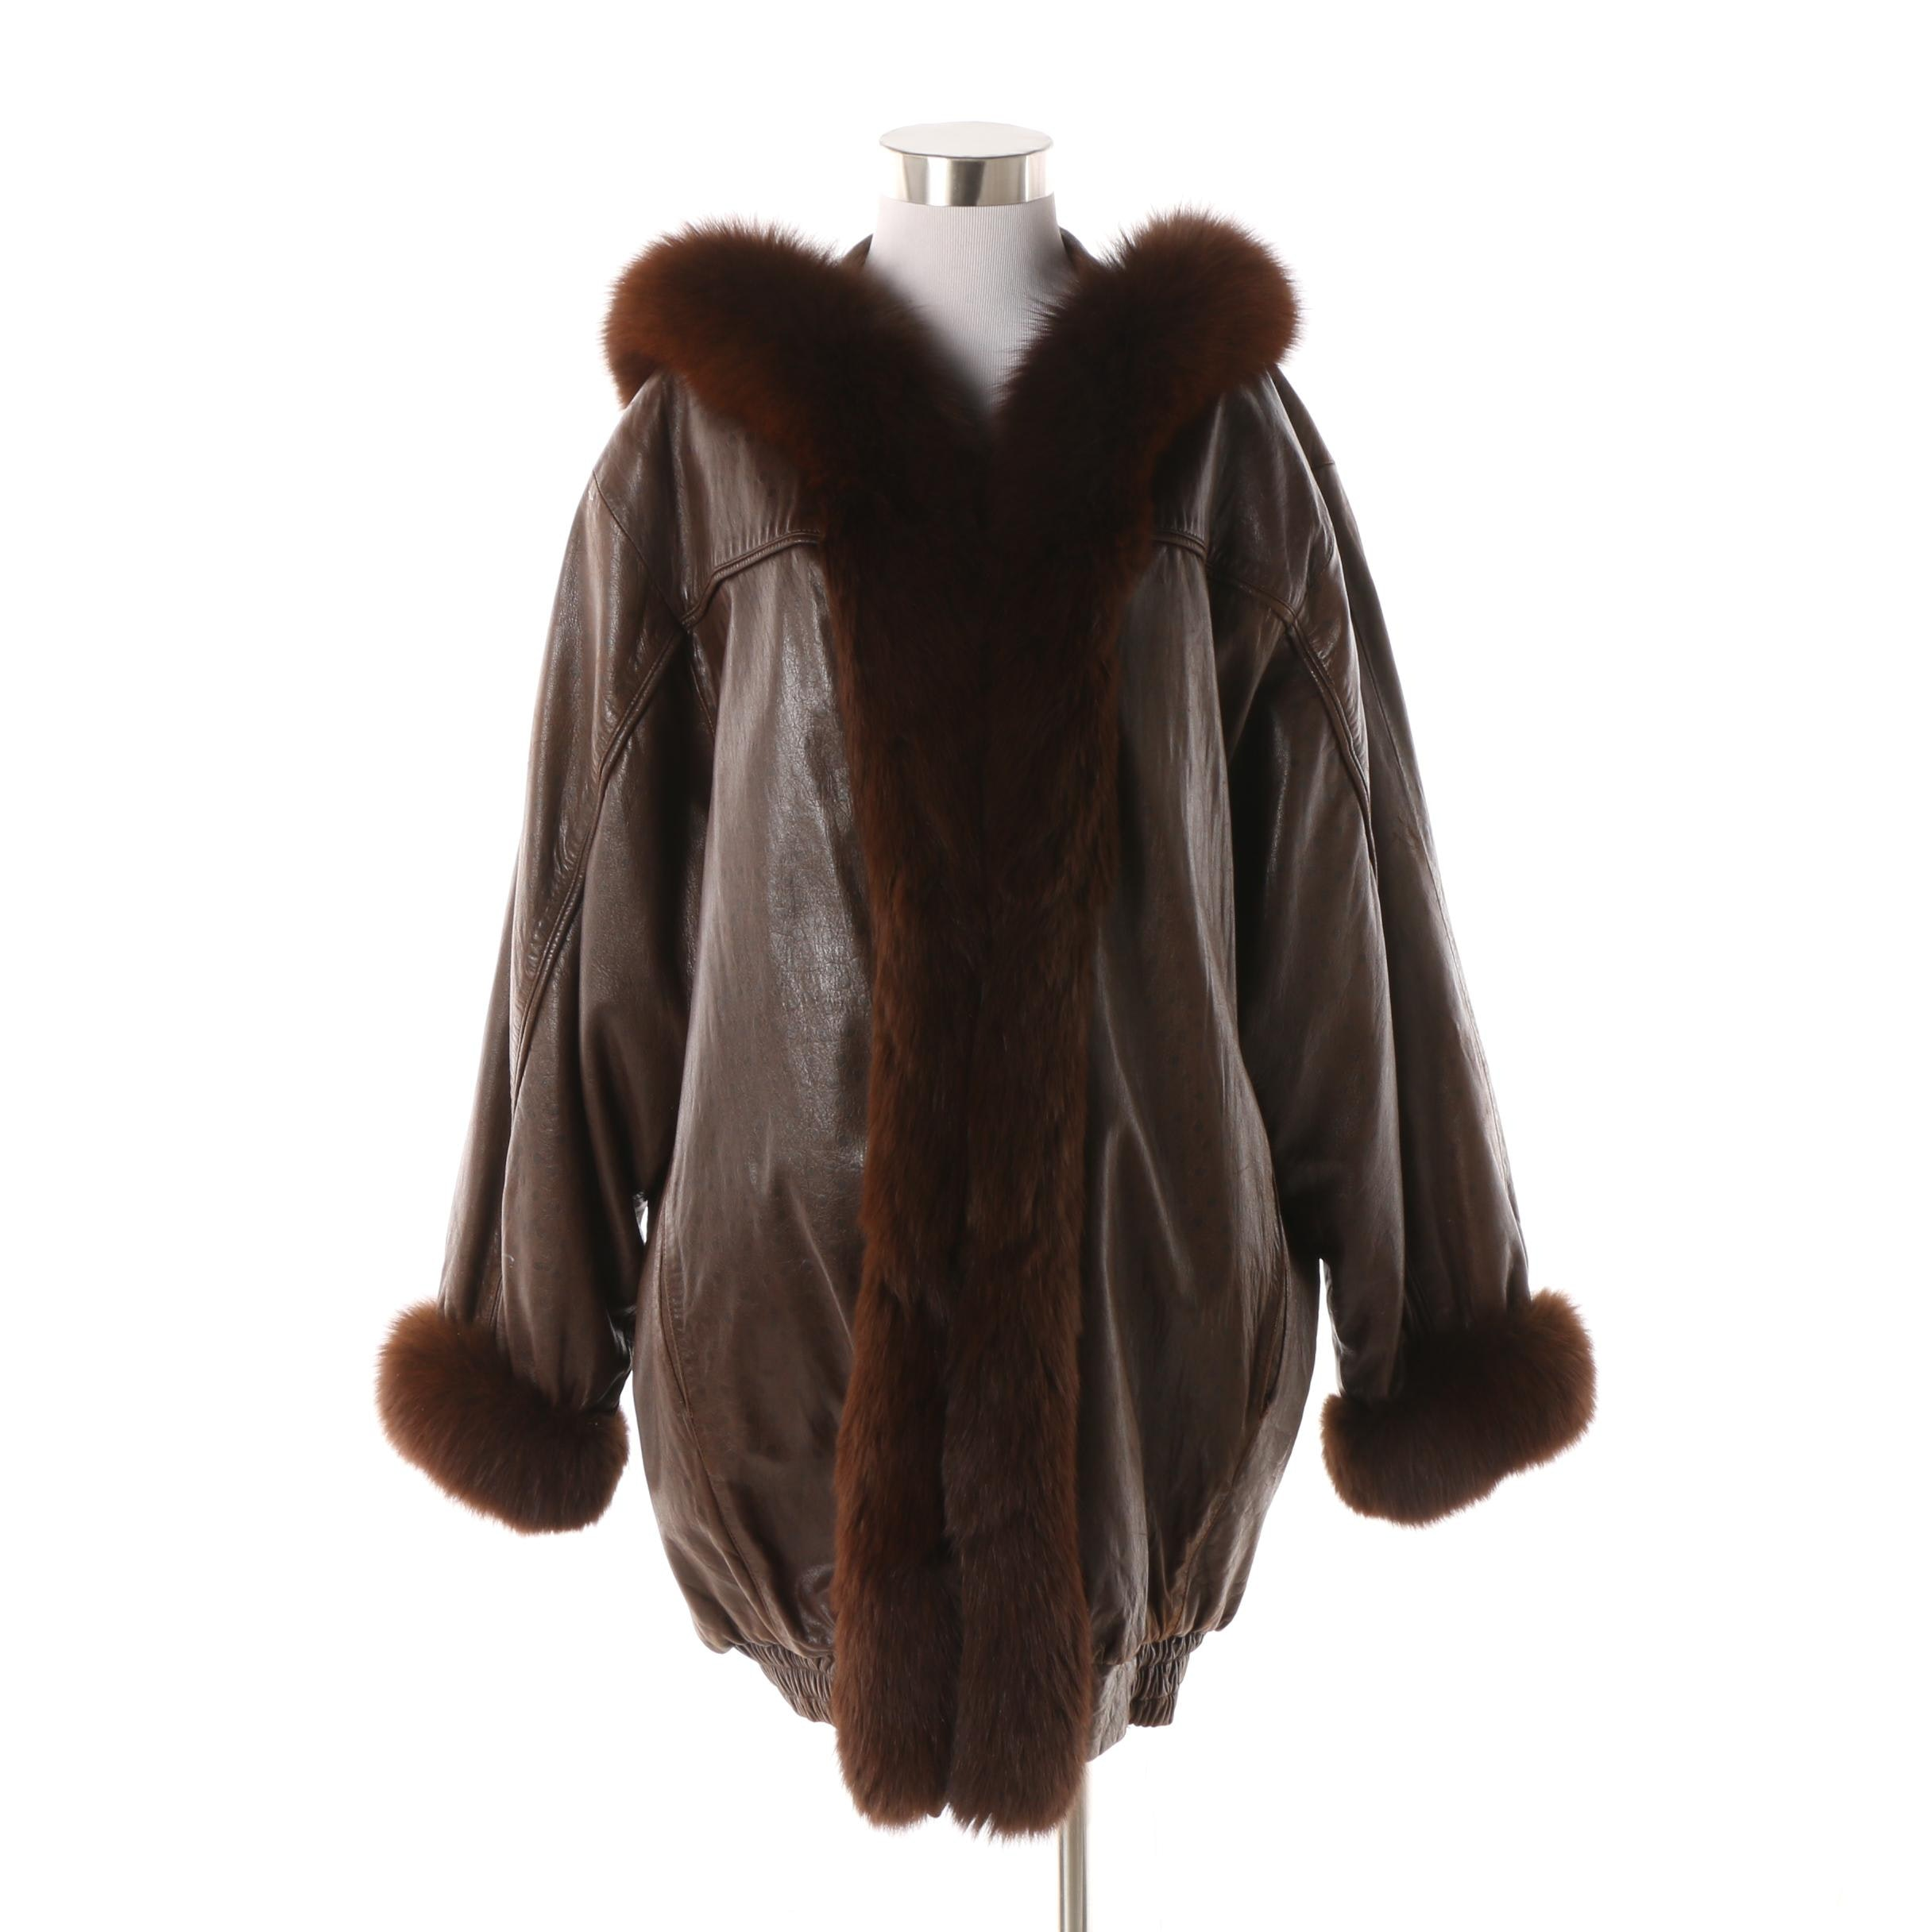 Women's 1980s Leather Car Coat with Fox Fur Trim and Sheared Beaver Fur Lining